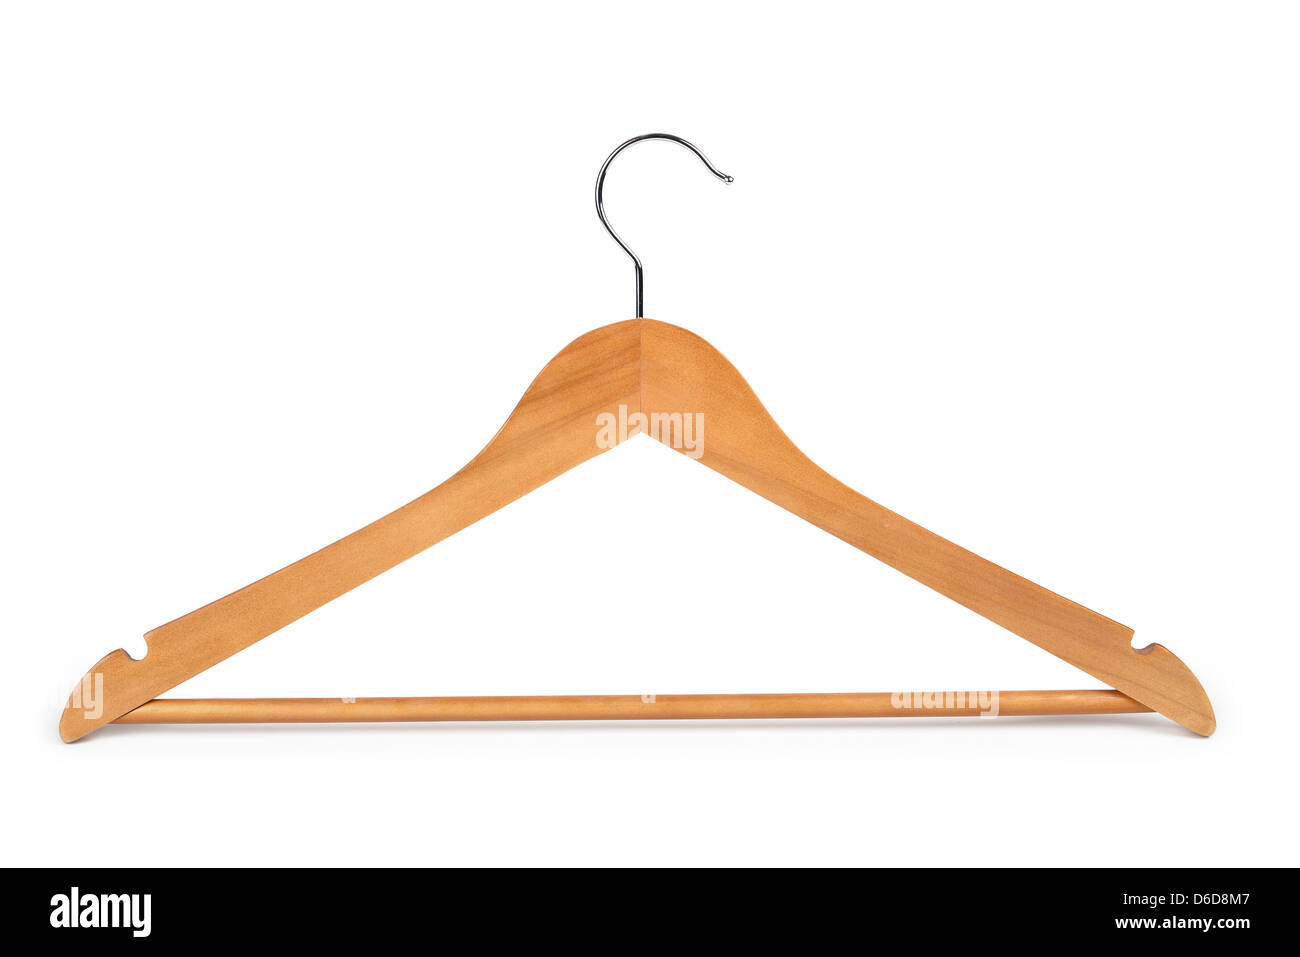 Wooden Clothes Hanger - Stock Image